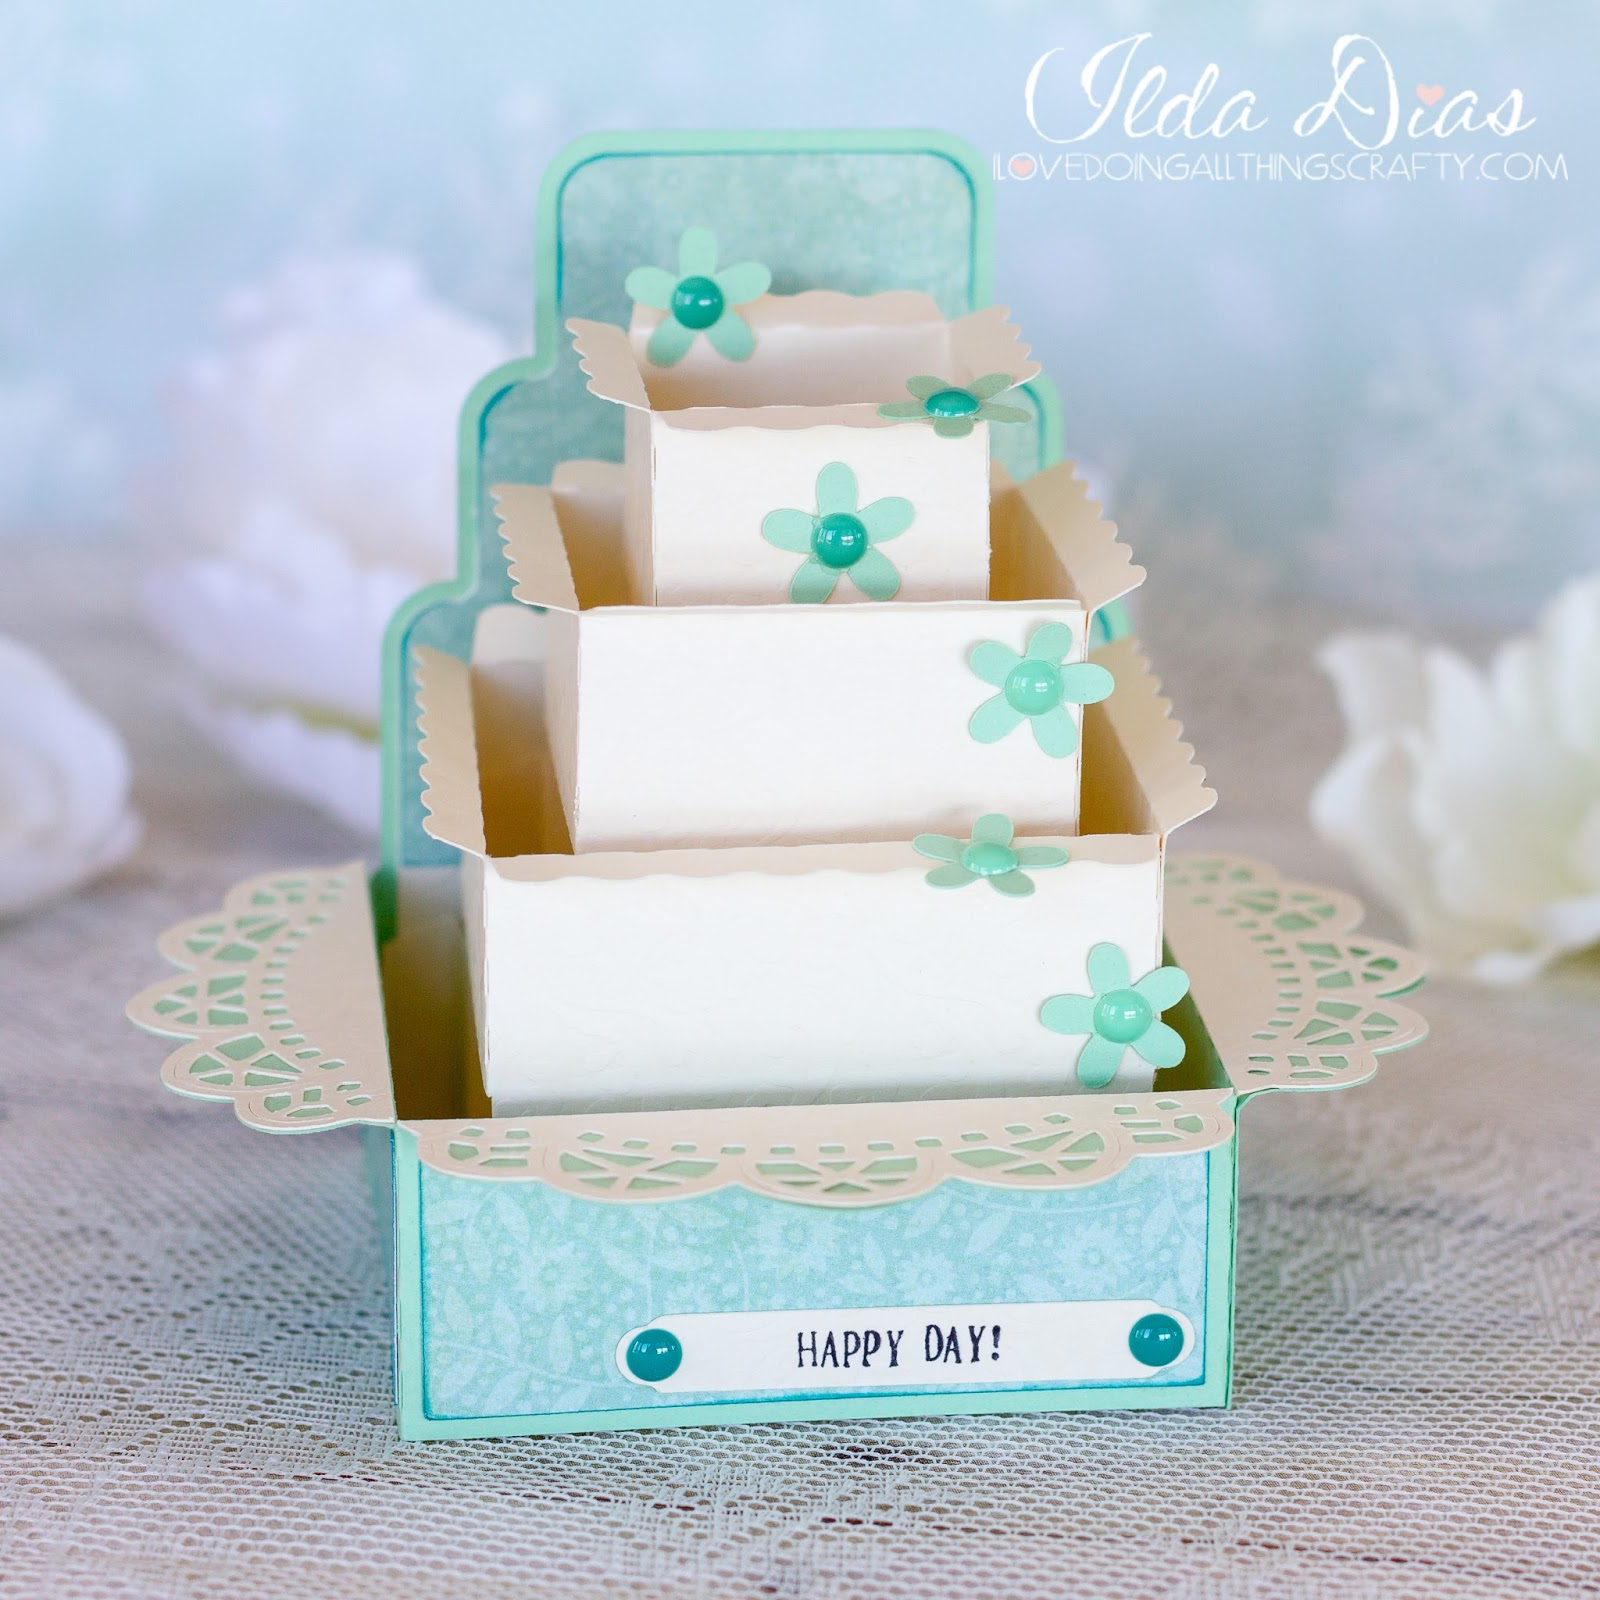 I Love Doing All Things Crafty: Wedding Cake Box Cards